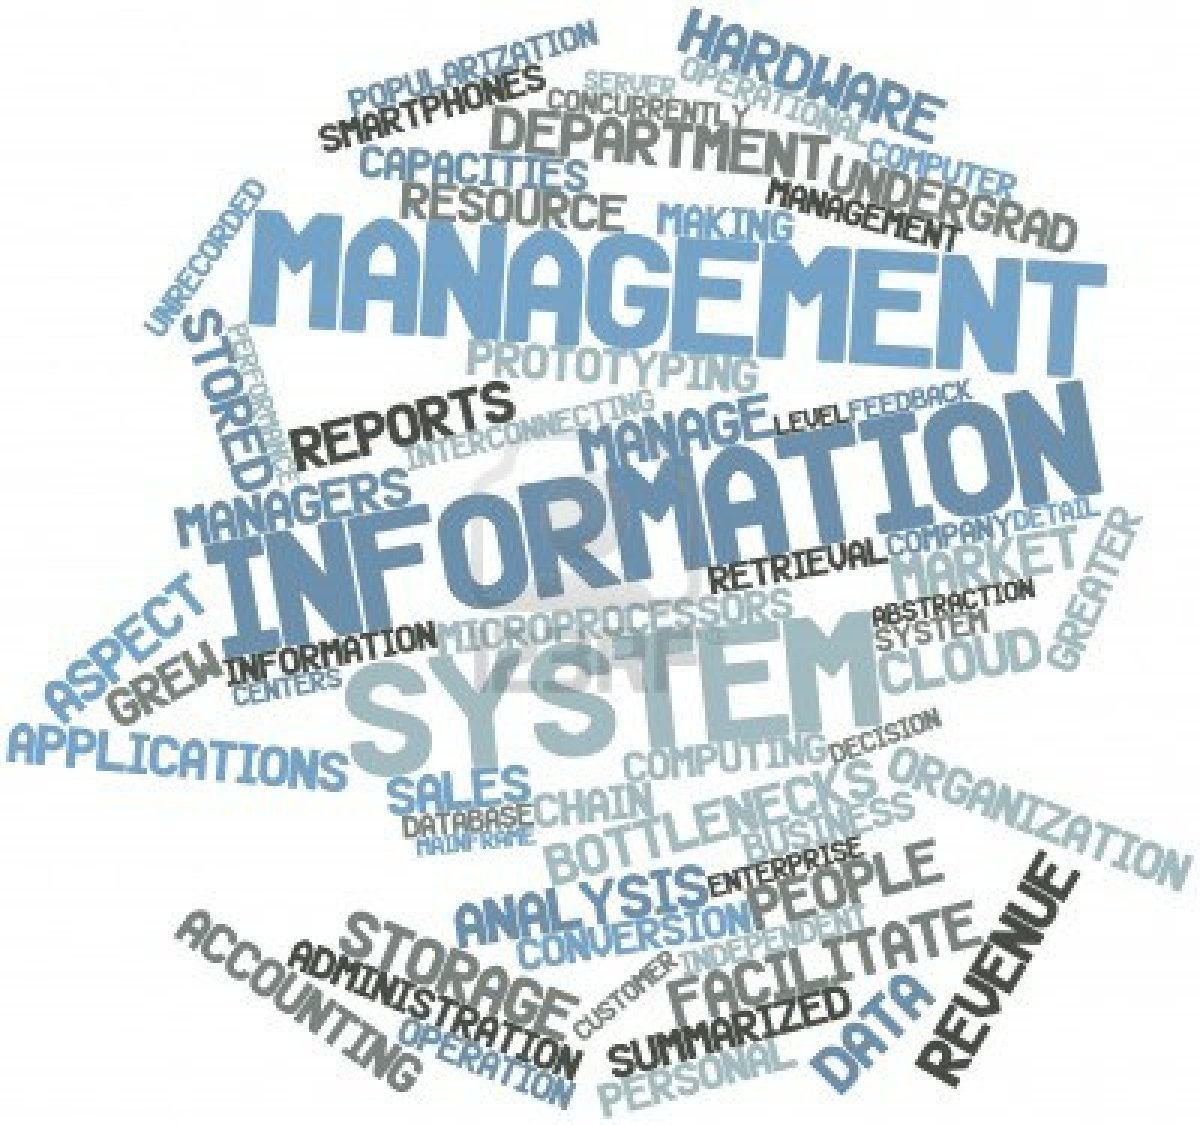 a management information system mis Article shared by:  this article provides an overview on management information system (mis) information system: it is a system which provides each manager in the organisation with the information he needs in order to take decisions, plan and control within his area of responsibility.